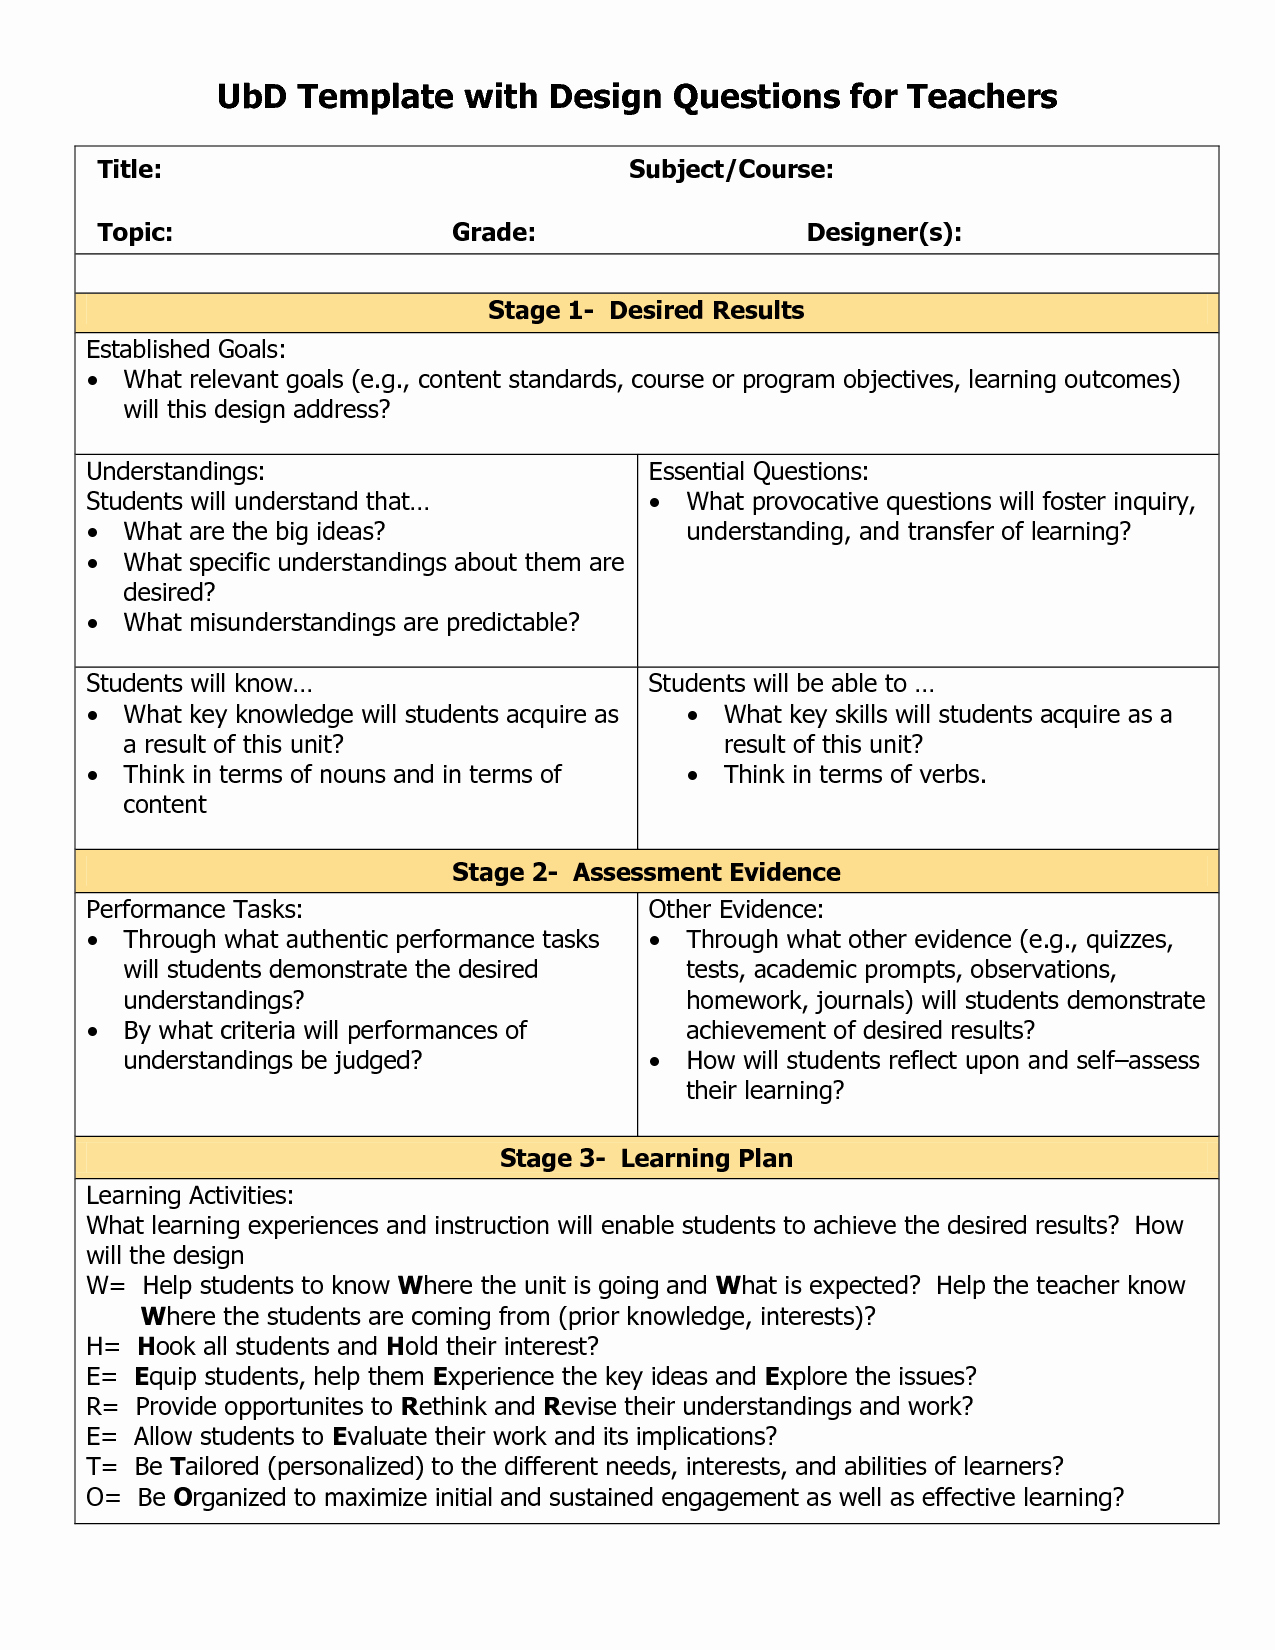 Elementary Math Lesson Plan Template Elegant Blank Ubd Planning Template Doc